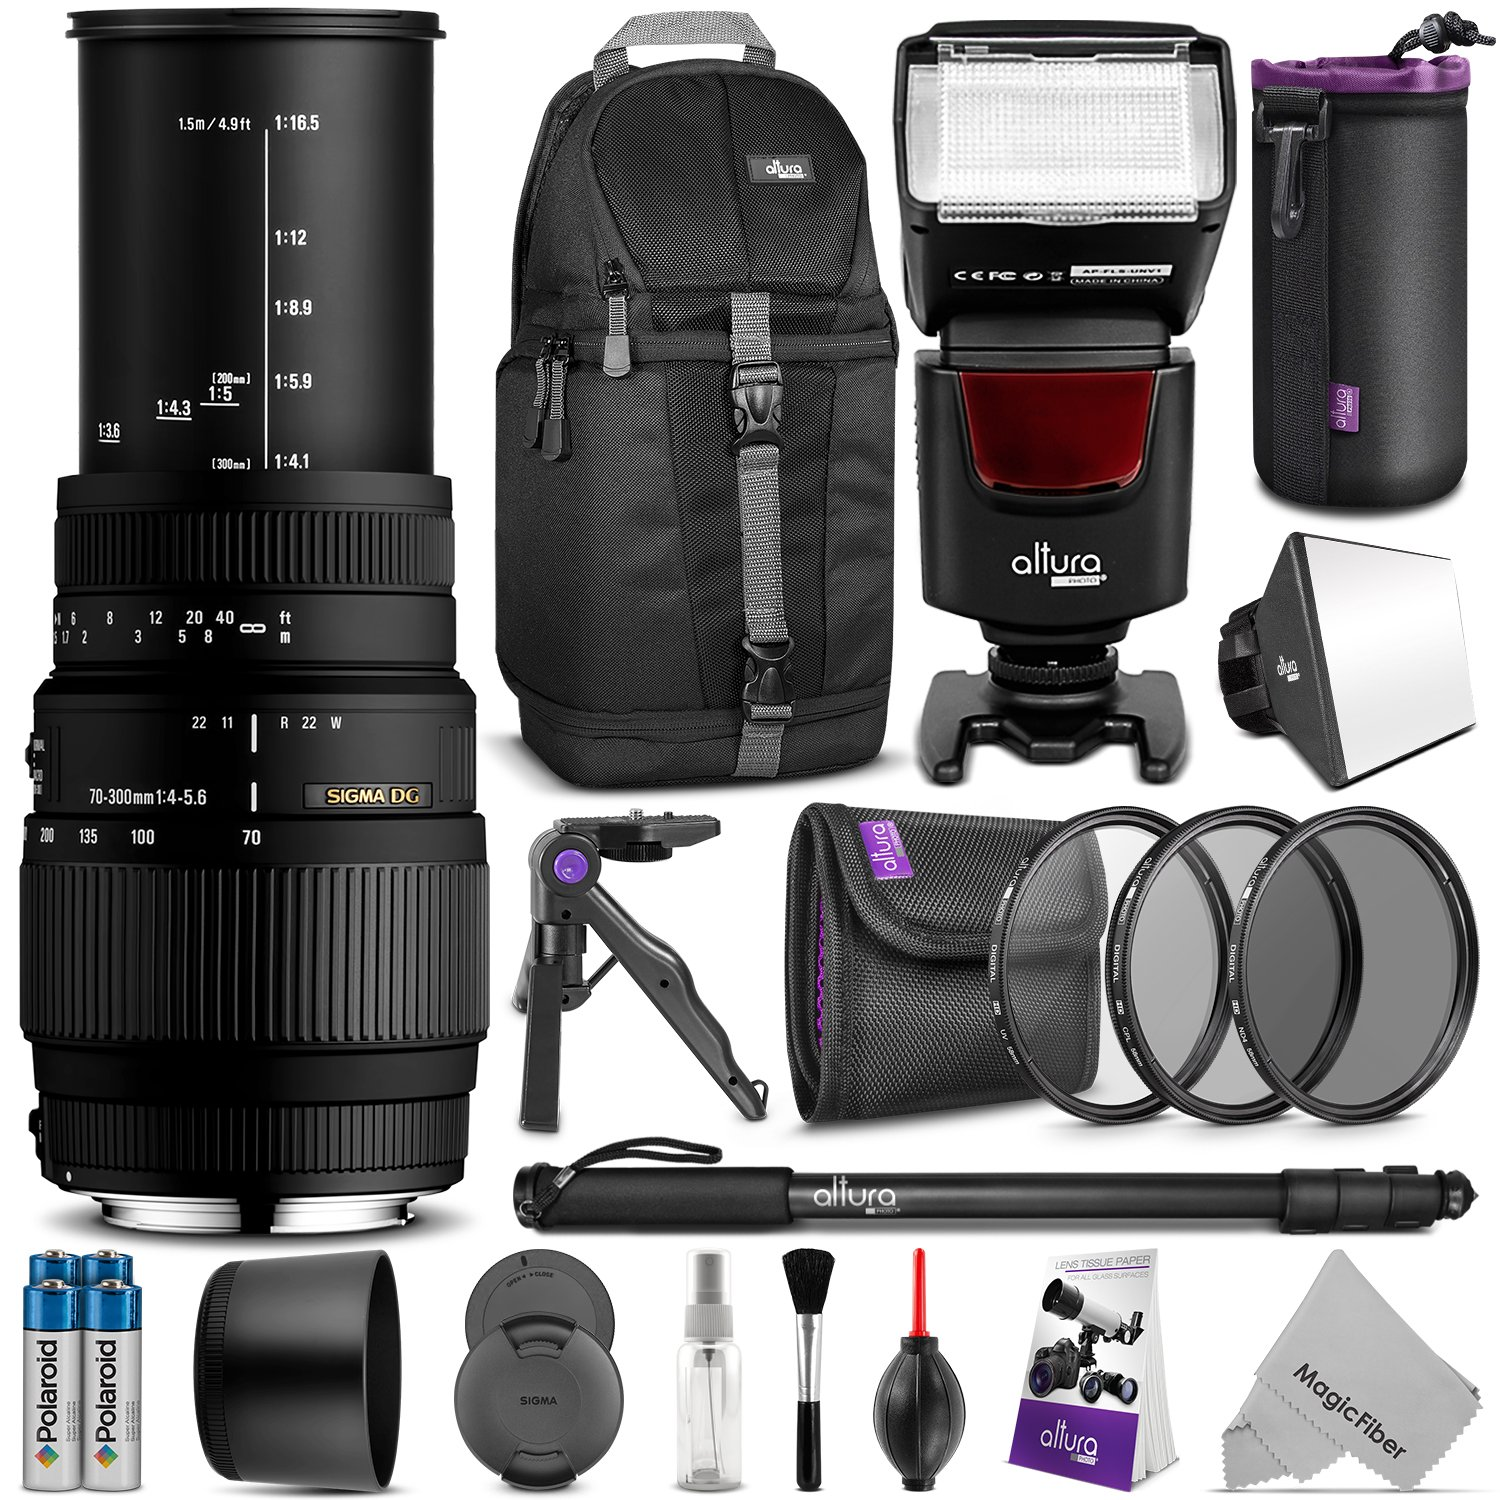 Sigma 70-300mm f/4-5.6 DG Macro Telephoto Zoom Lens for NIKON DSLR Camera w/ Complete Photo and Travel Bundle by Sigma